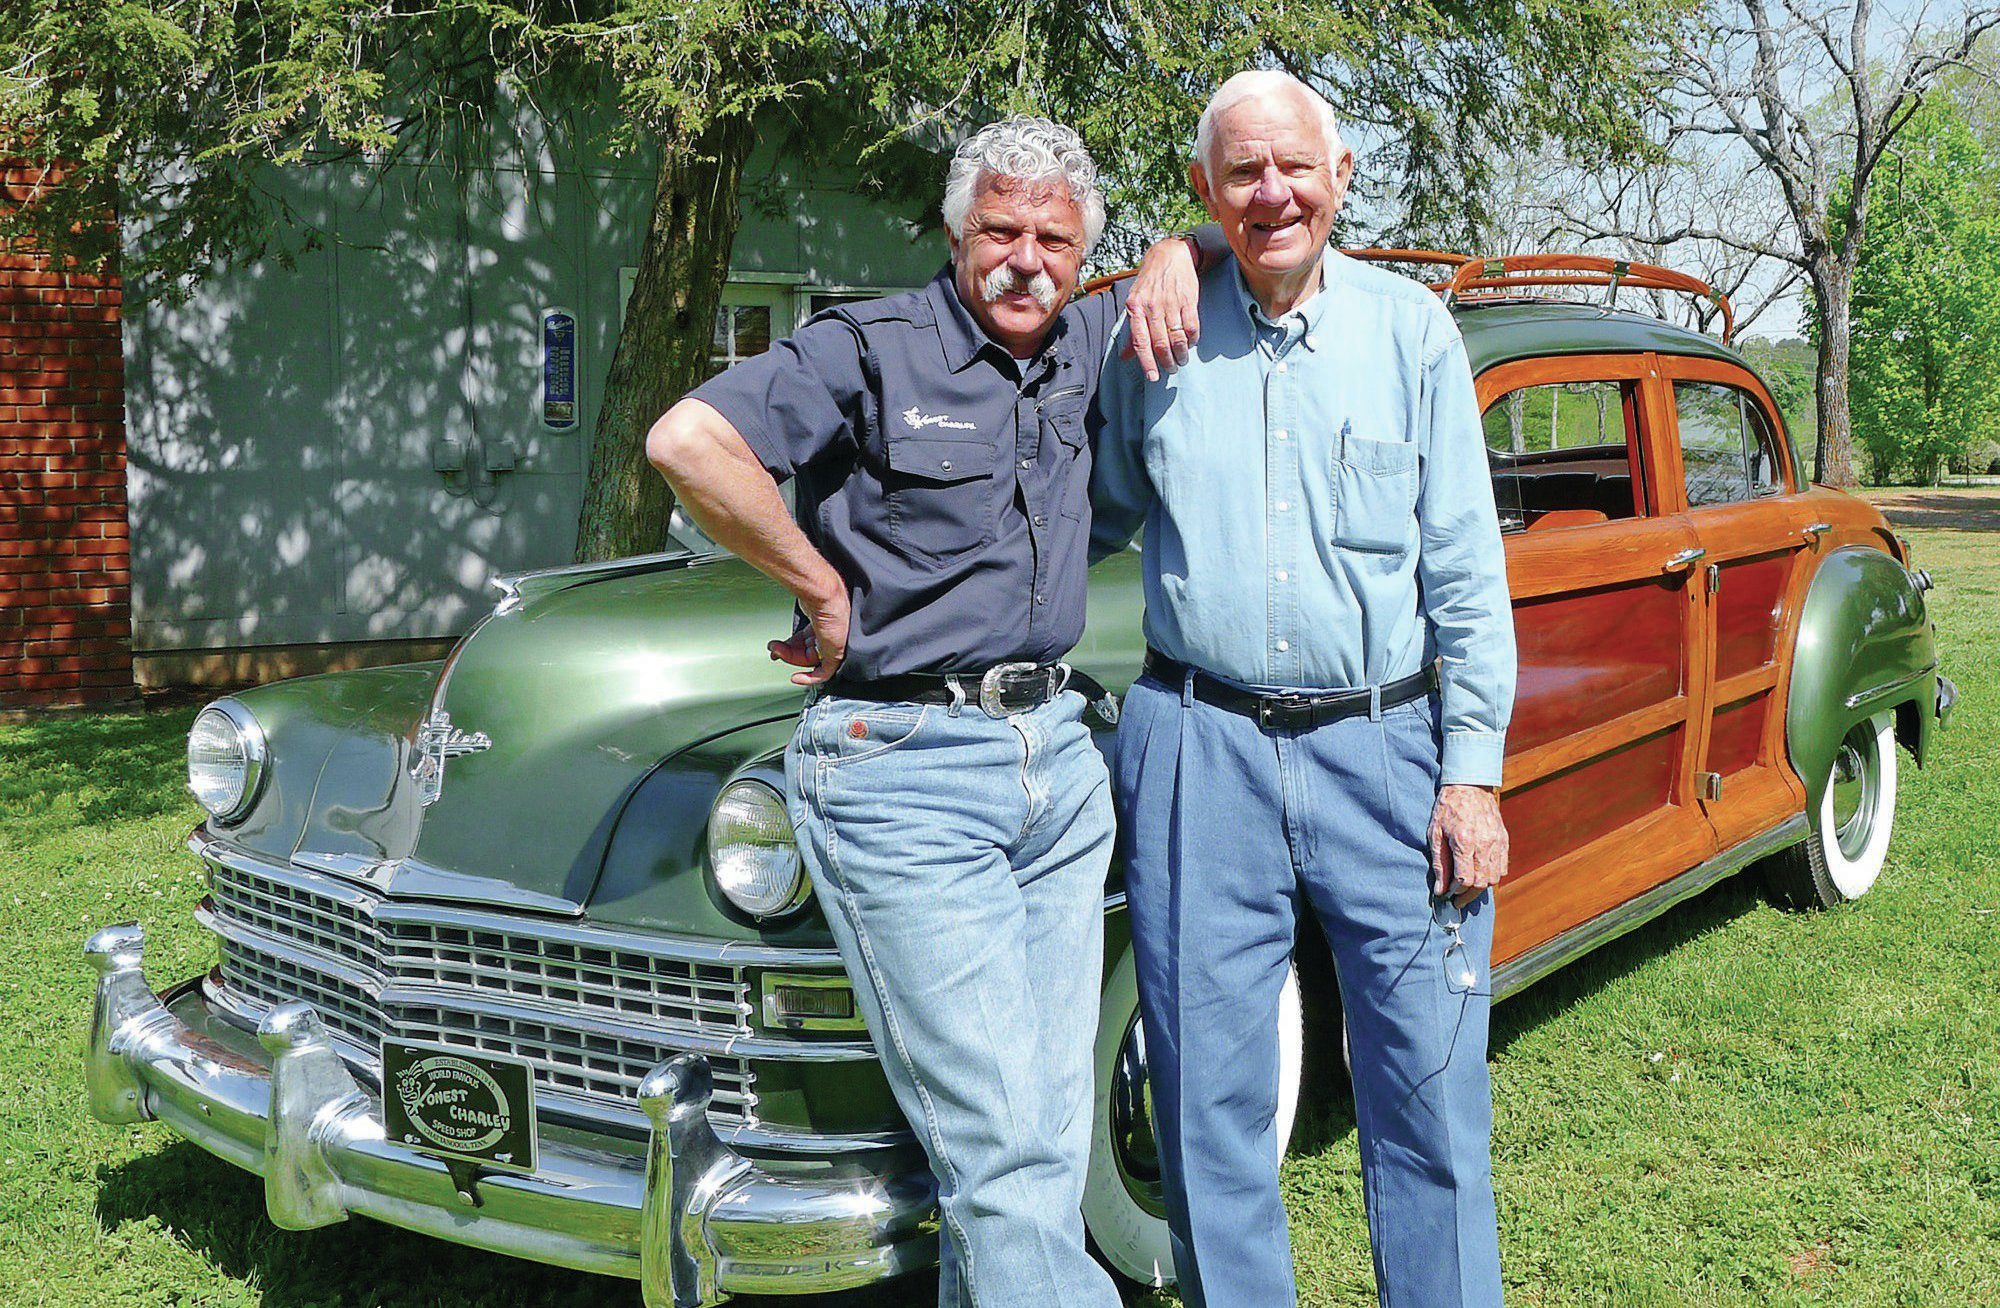 Corky Coker (CEO of Coker Tire Company) and Harold Coker along with the recently revived '47 Chrysler wagon originally restored by Harold in the early '70s.